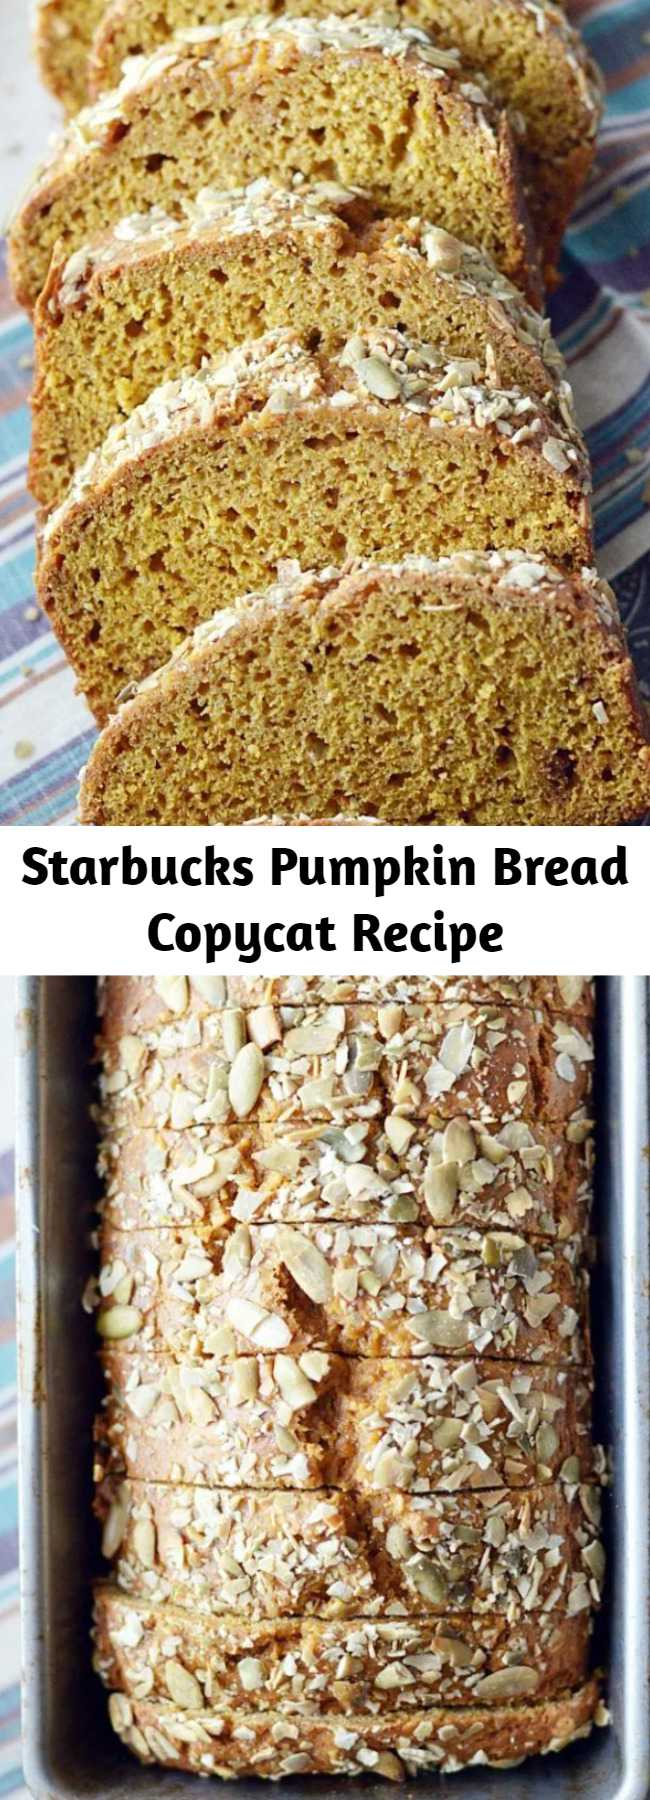 Starbucks Pumpkin Bread Copycat Recipe - Thick moist slices of pumpkin bread that perfectly mimic everyone's favorite loaf at Starbucks. You'll love this homemade copycat recipe even more than the real thing!